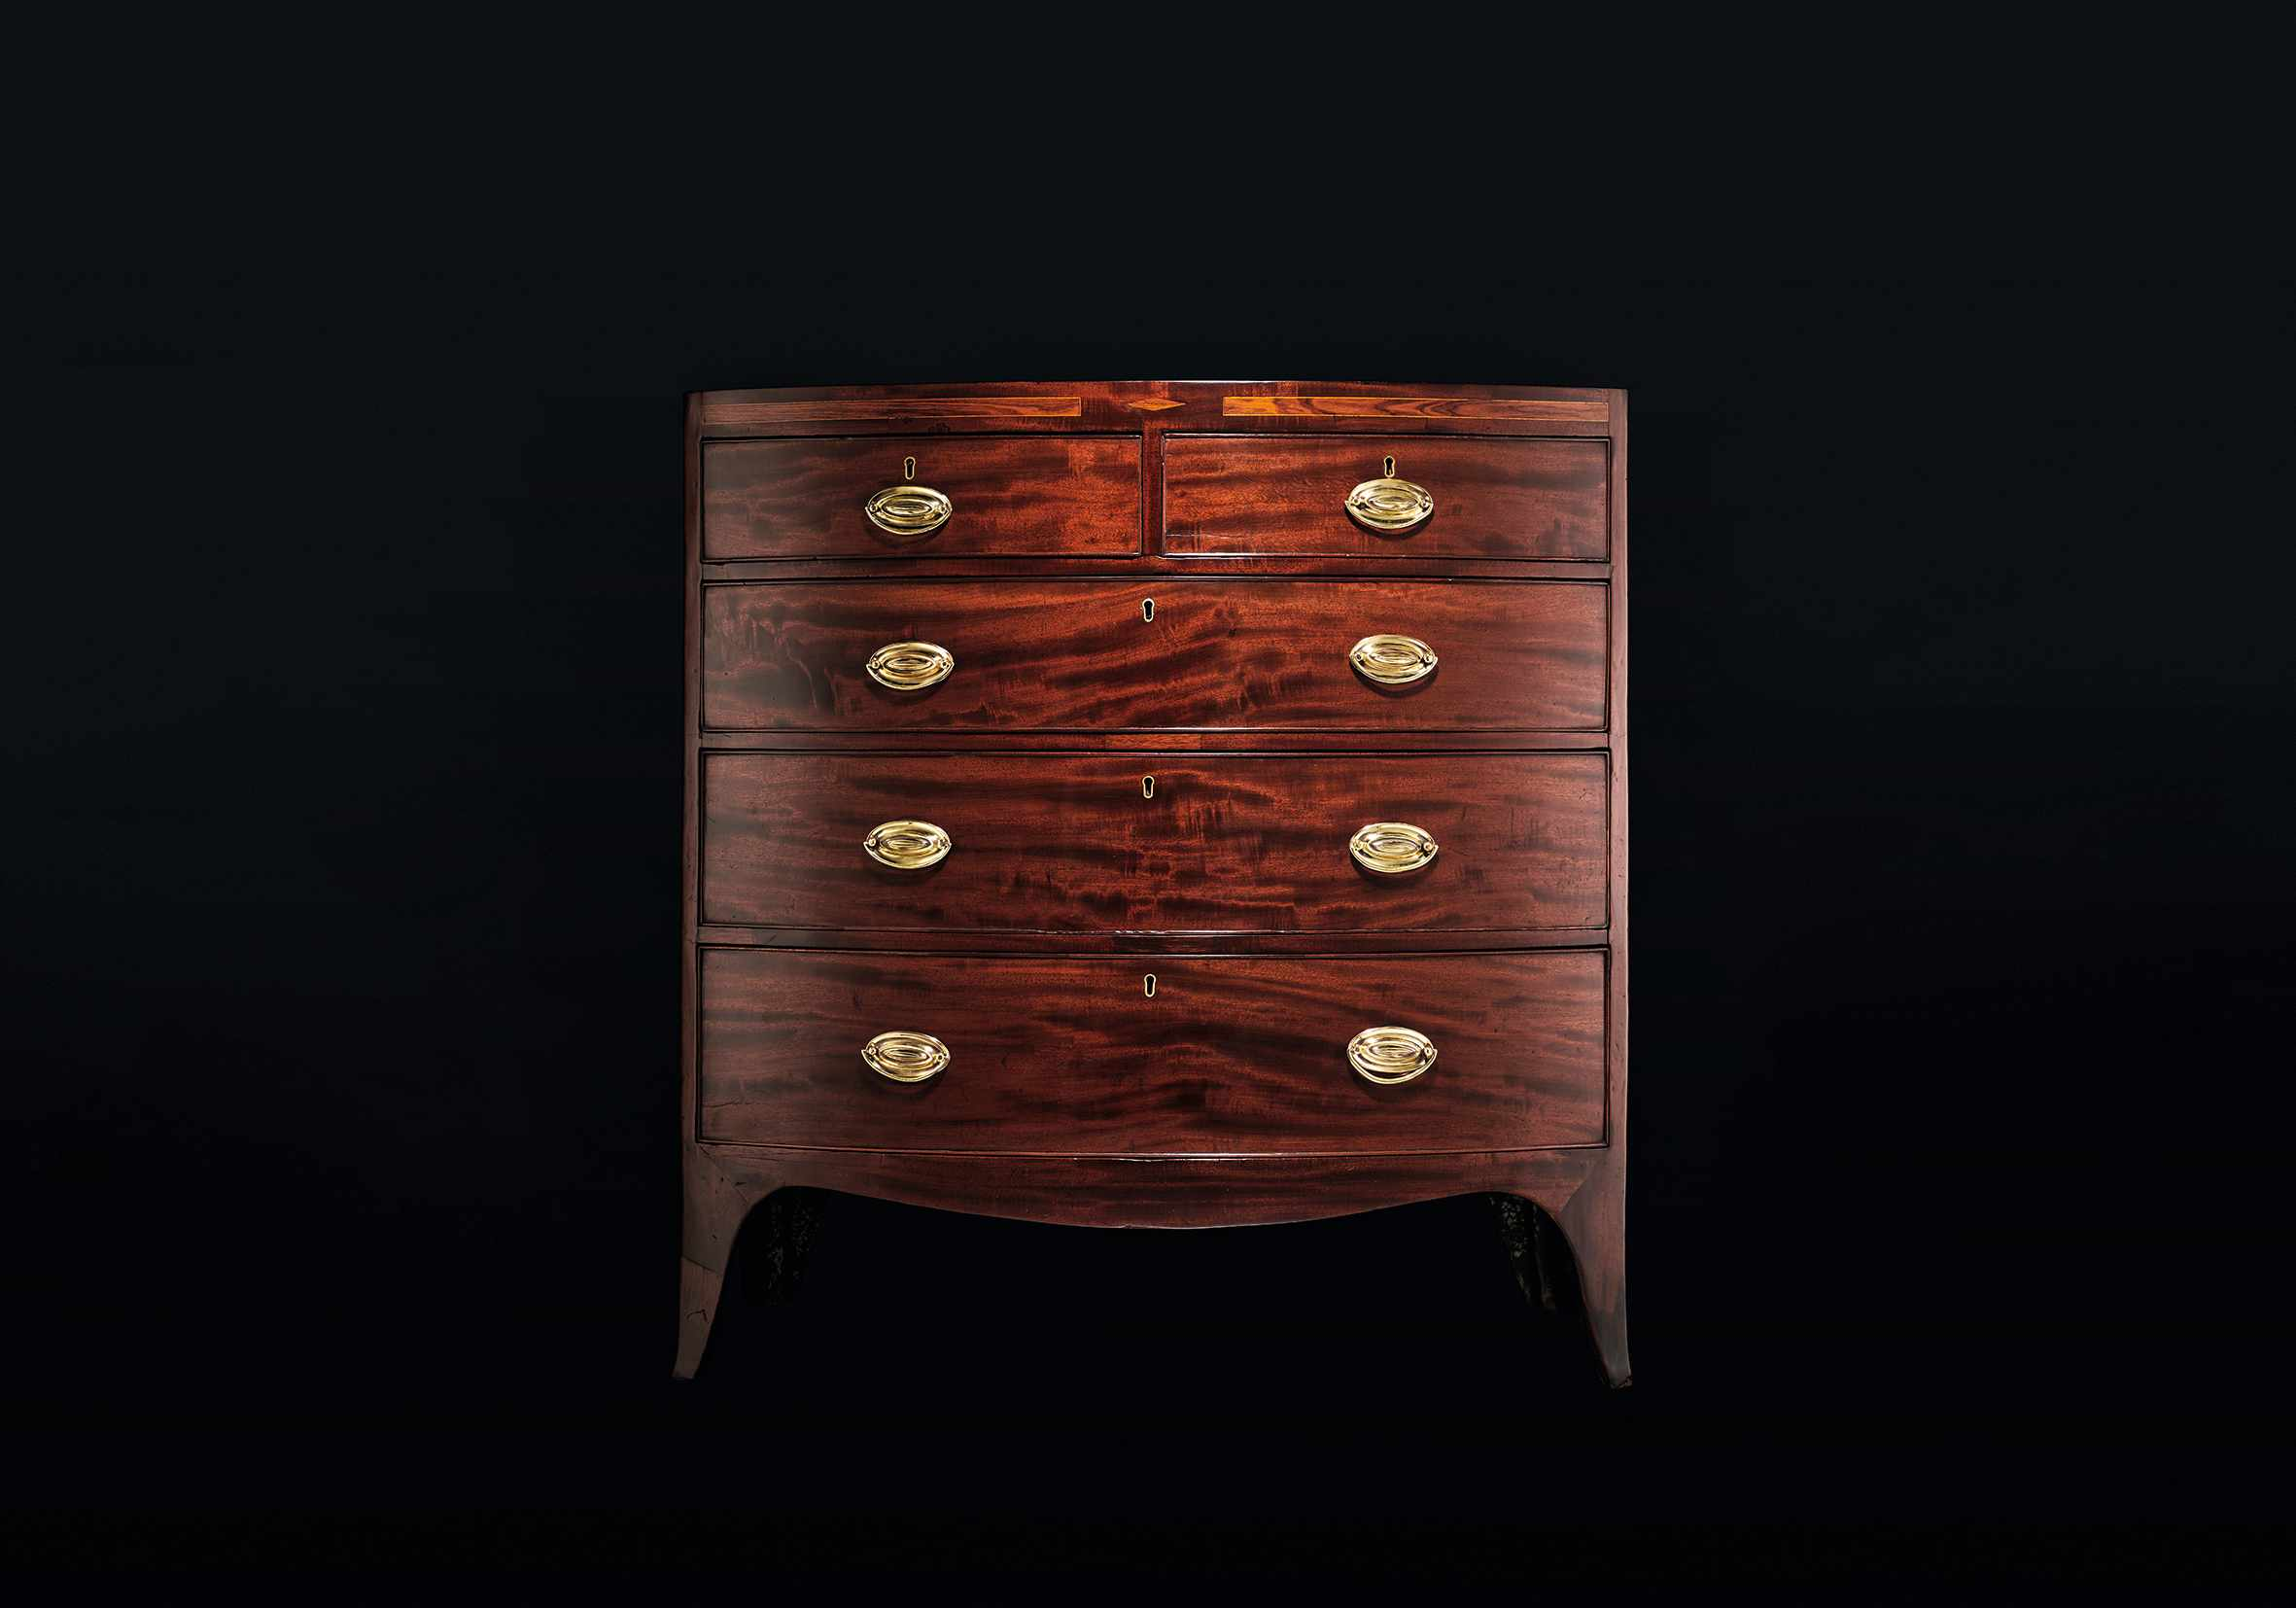 A shiny Georgian bow-fronted chest of drawers against a black background